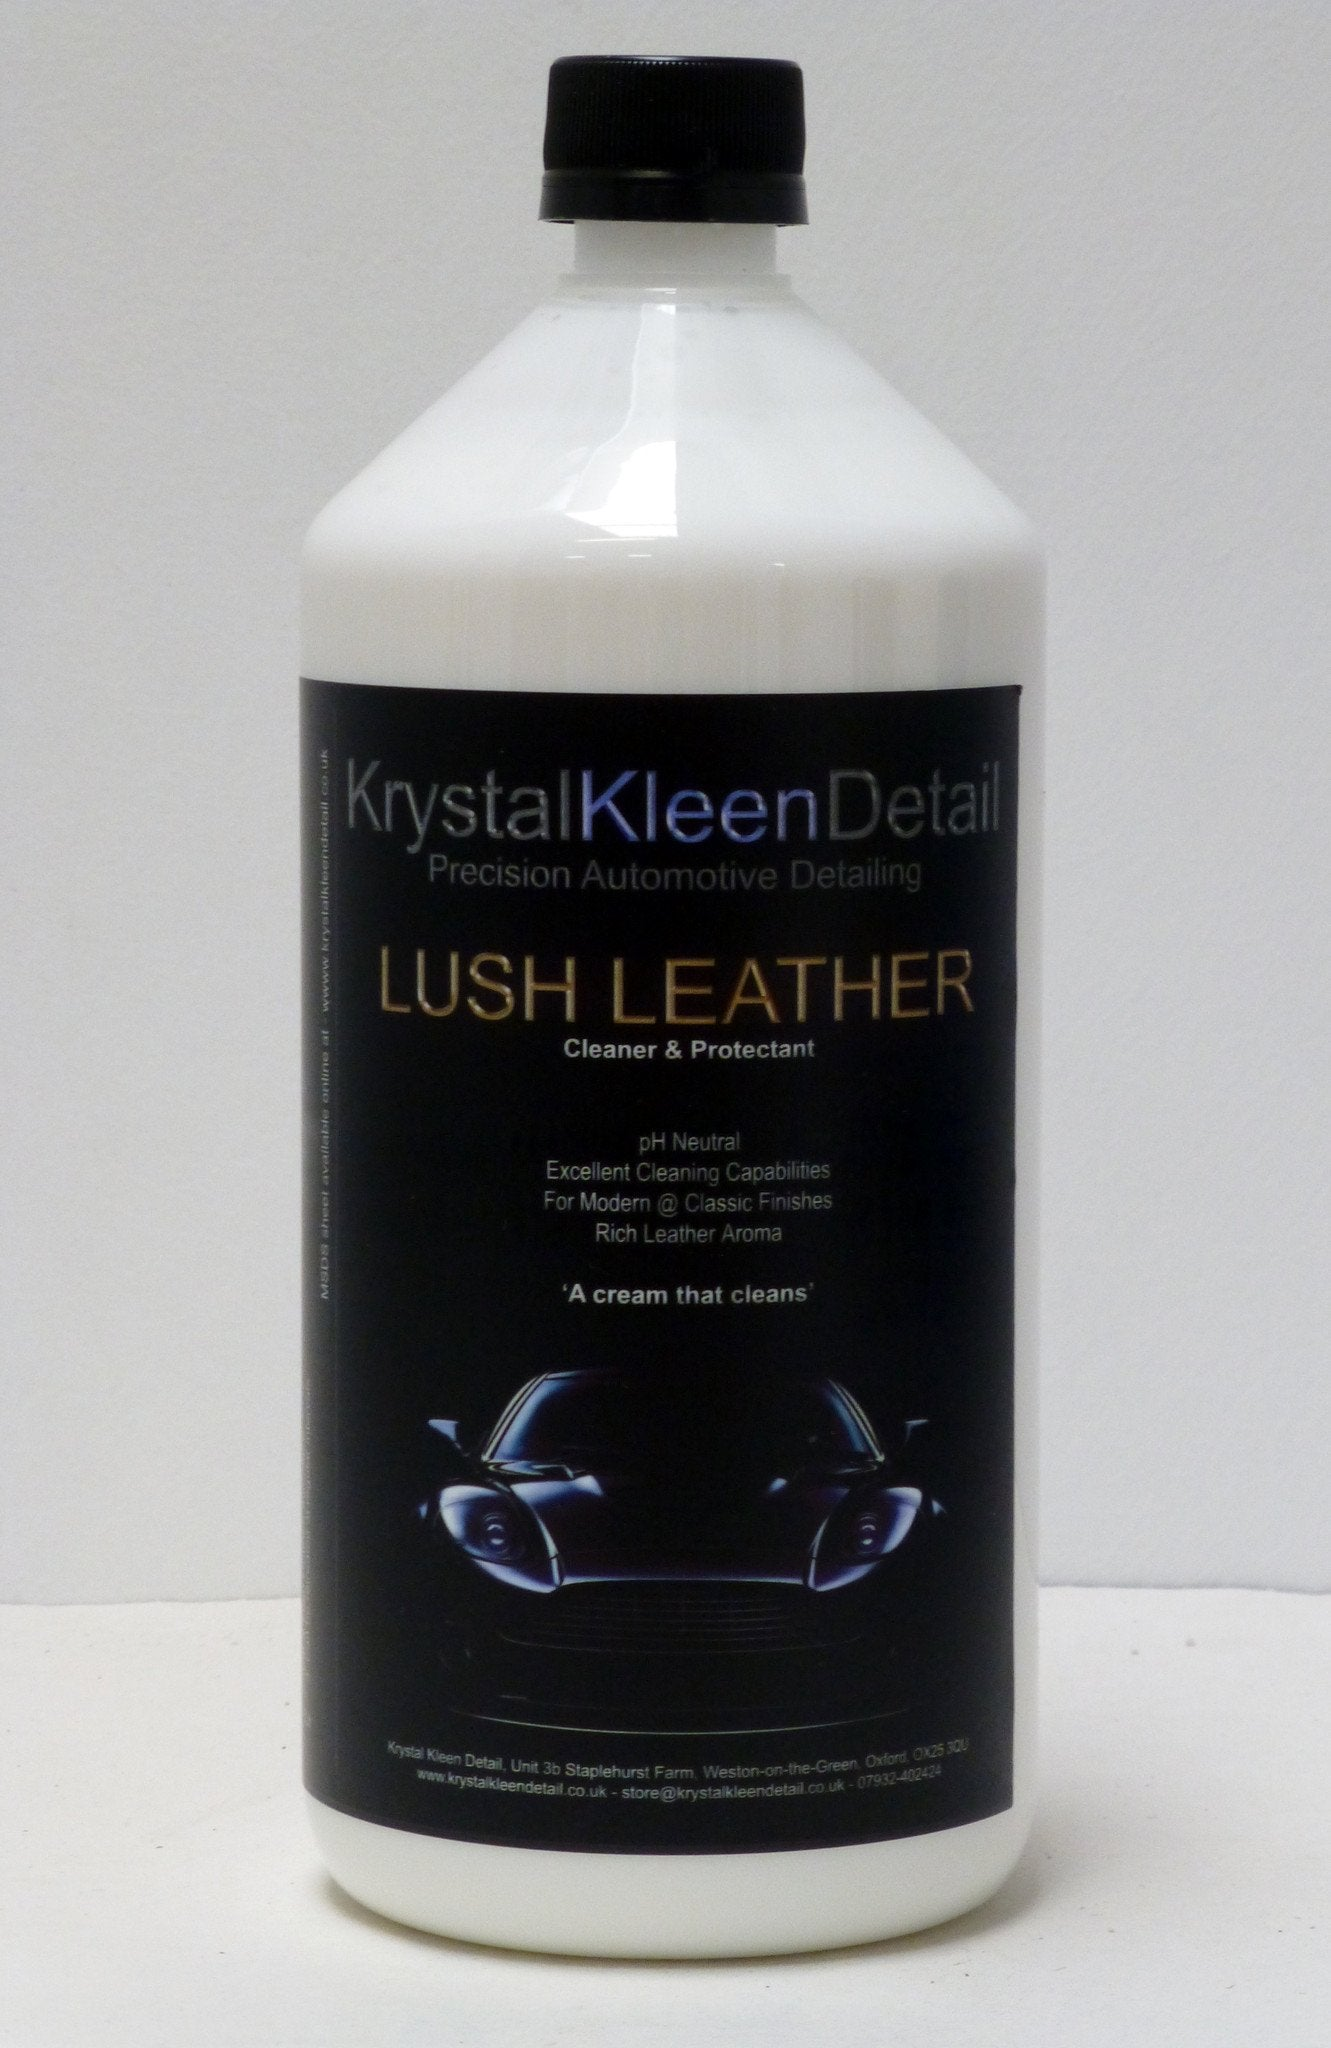 LUSH LEATHER Cleaner & Protectant